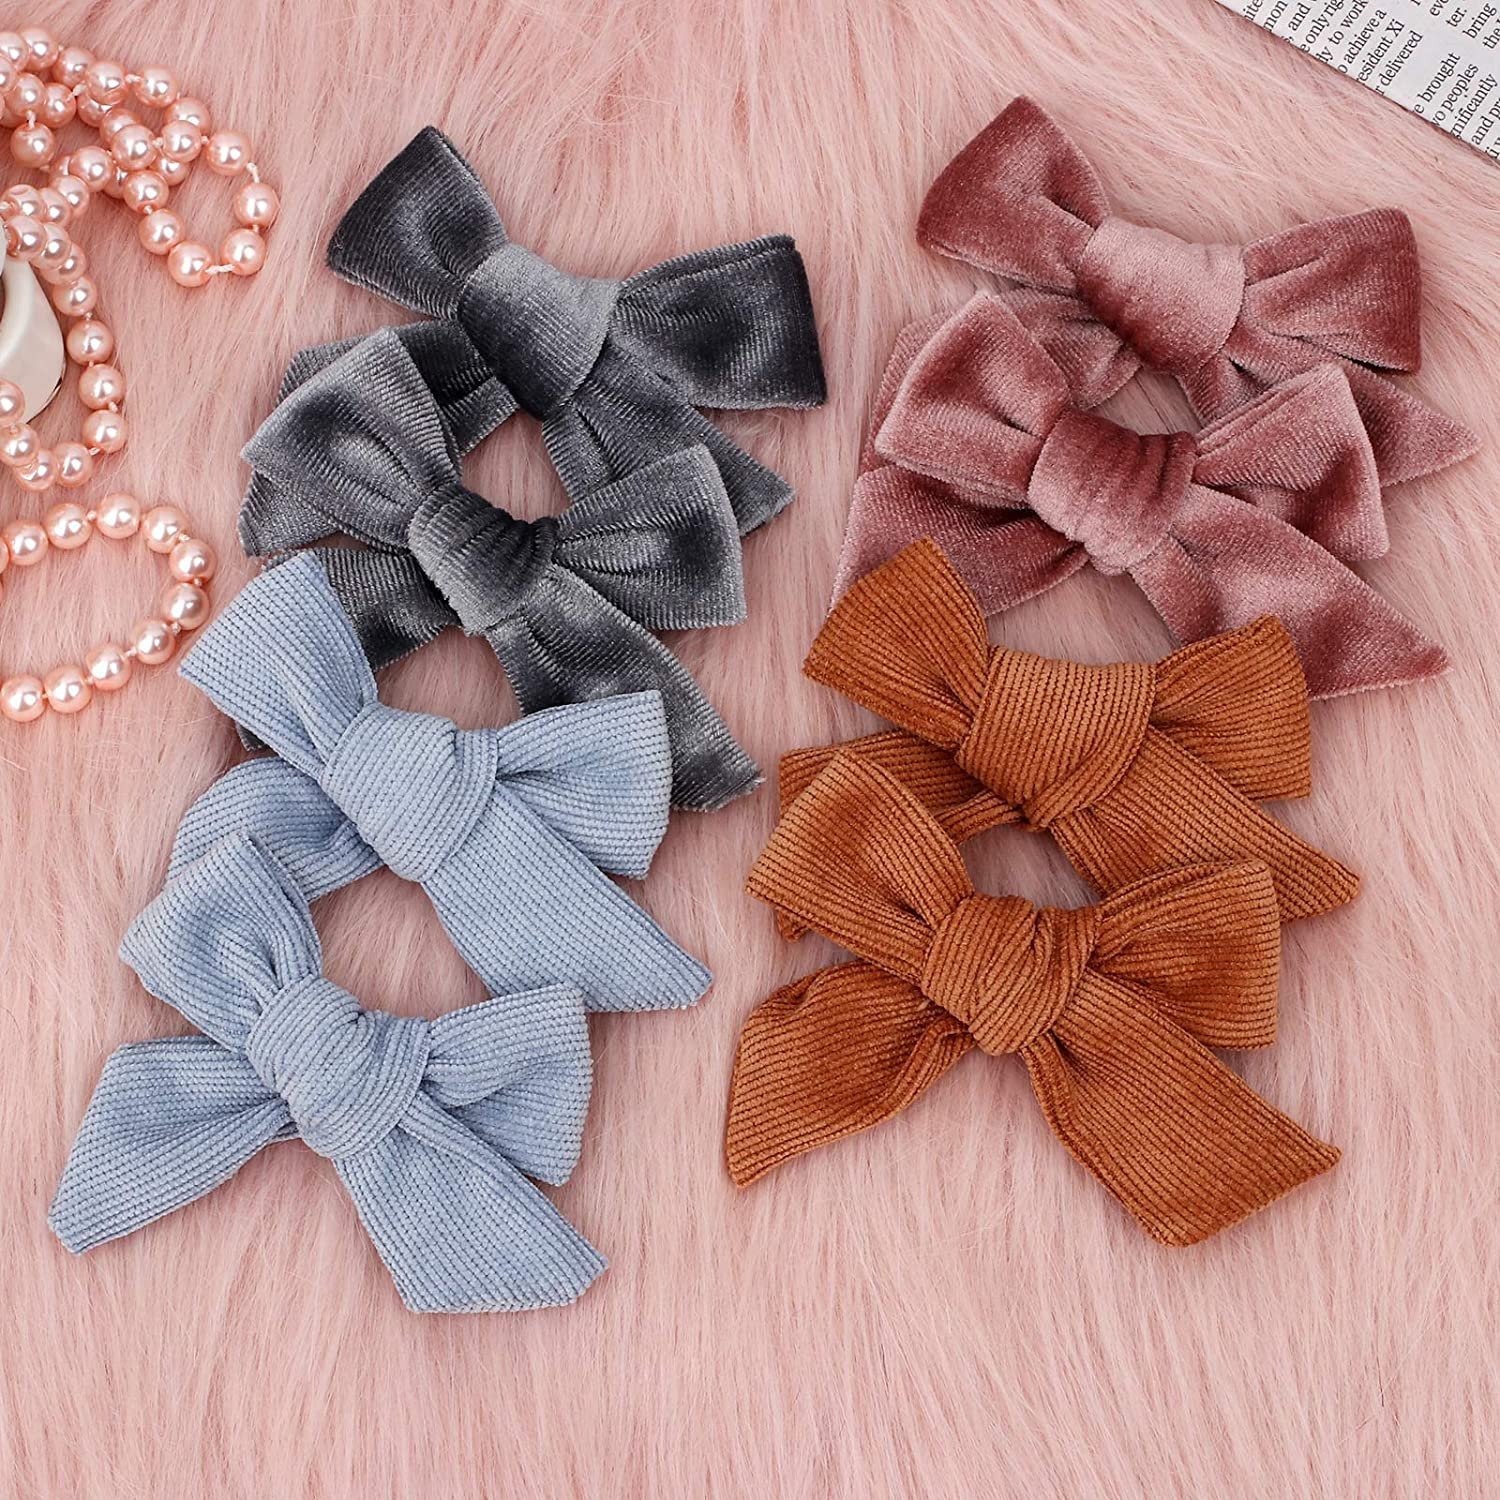 24 PCS Baby Girls Hair Bows Clips 4.5 inch Alligator Clips Tiny Barrettes Accessories for Fine Hair Infants Toddler Kids